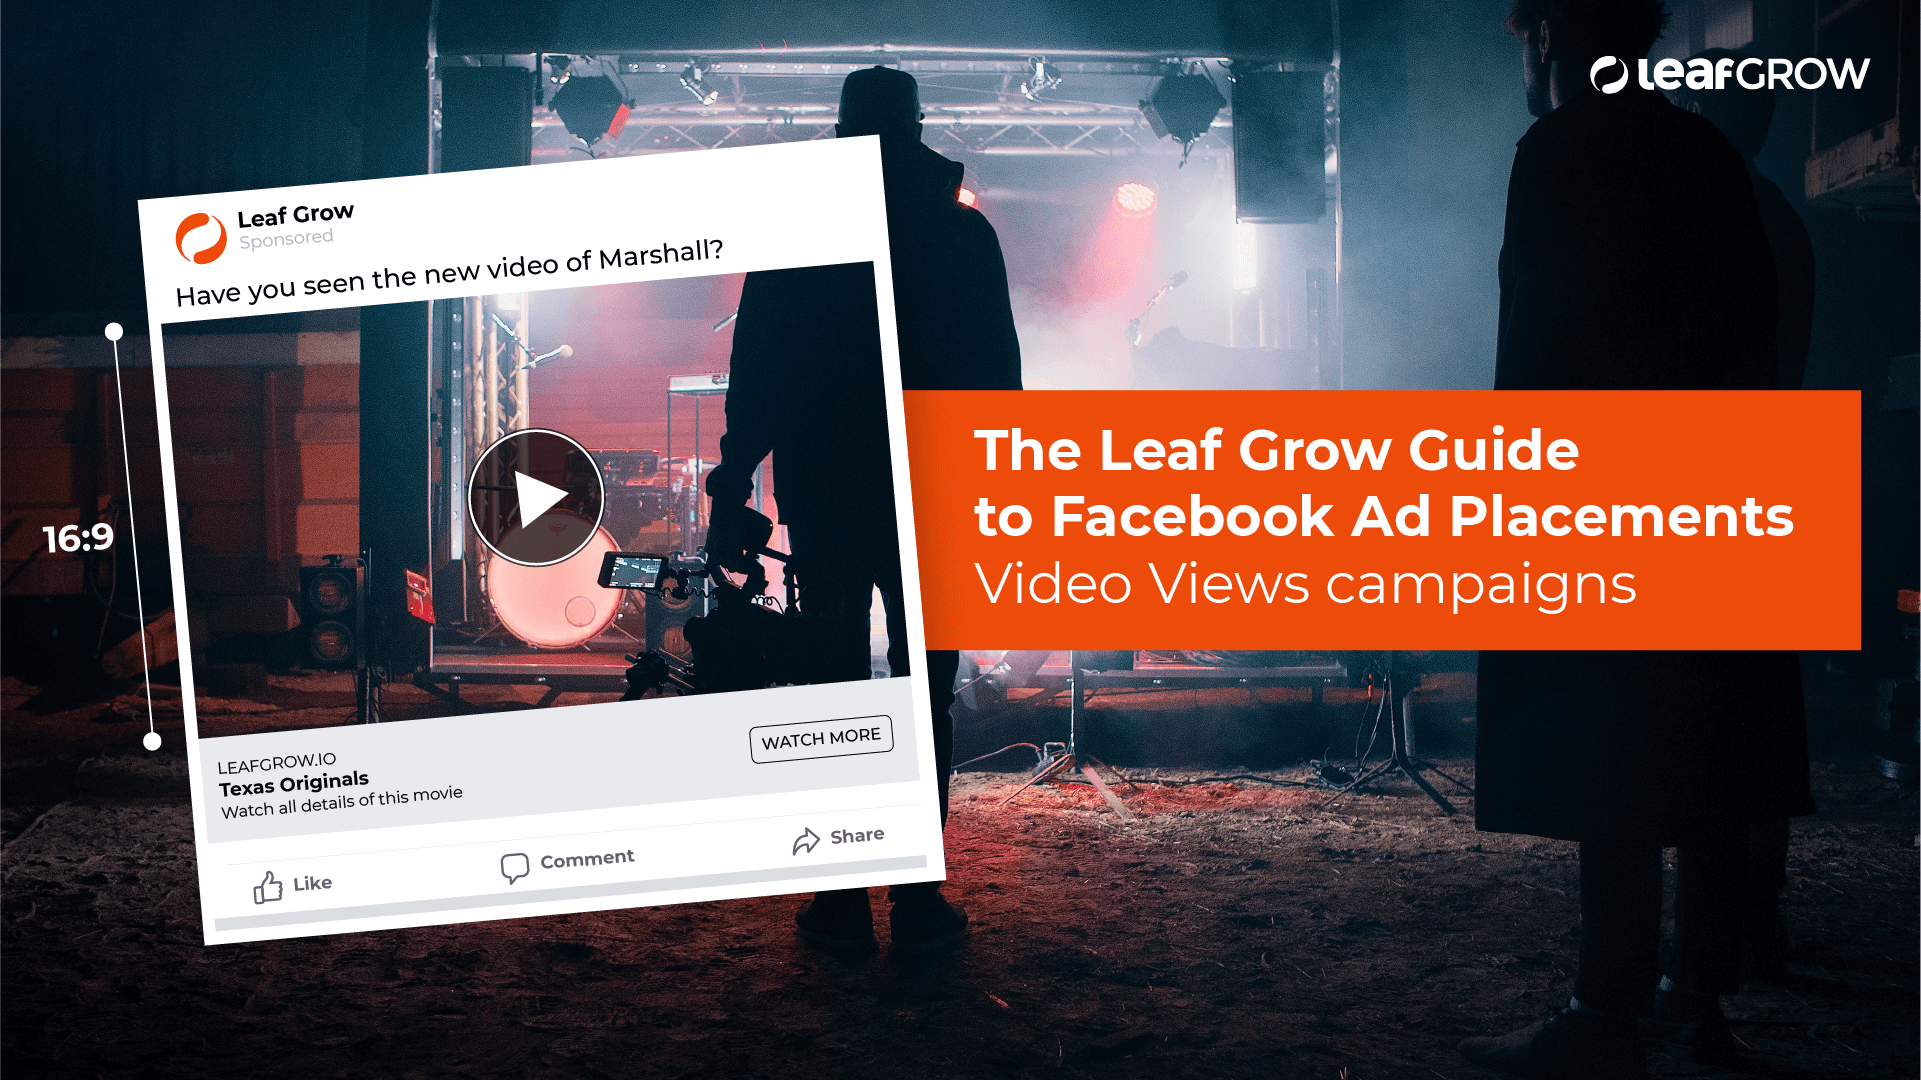 The Leaf Grow Guide to Facebook Ad Placements: Video Views campaigns -